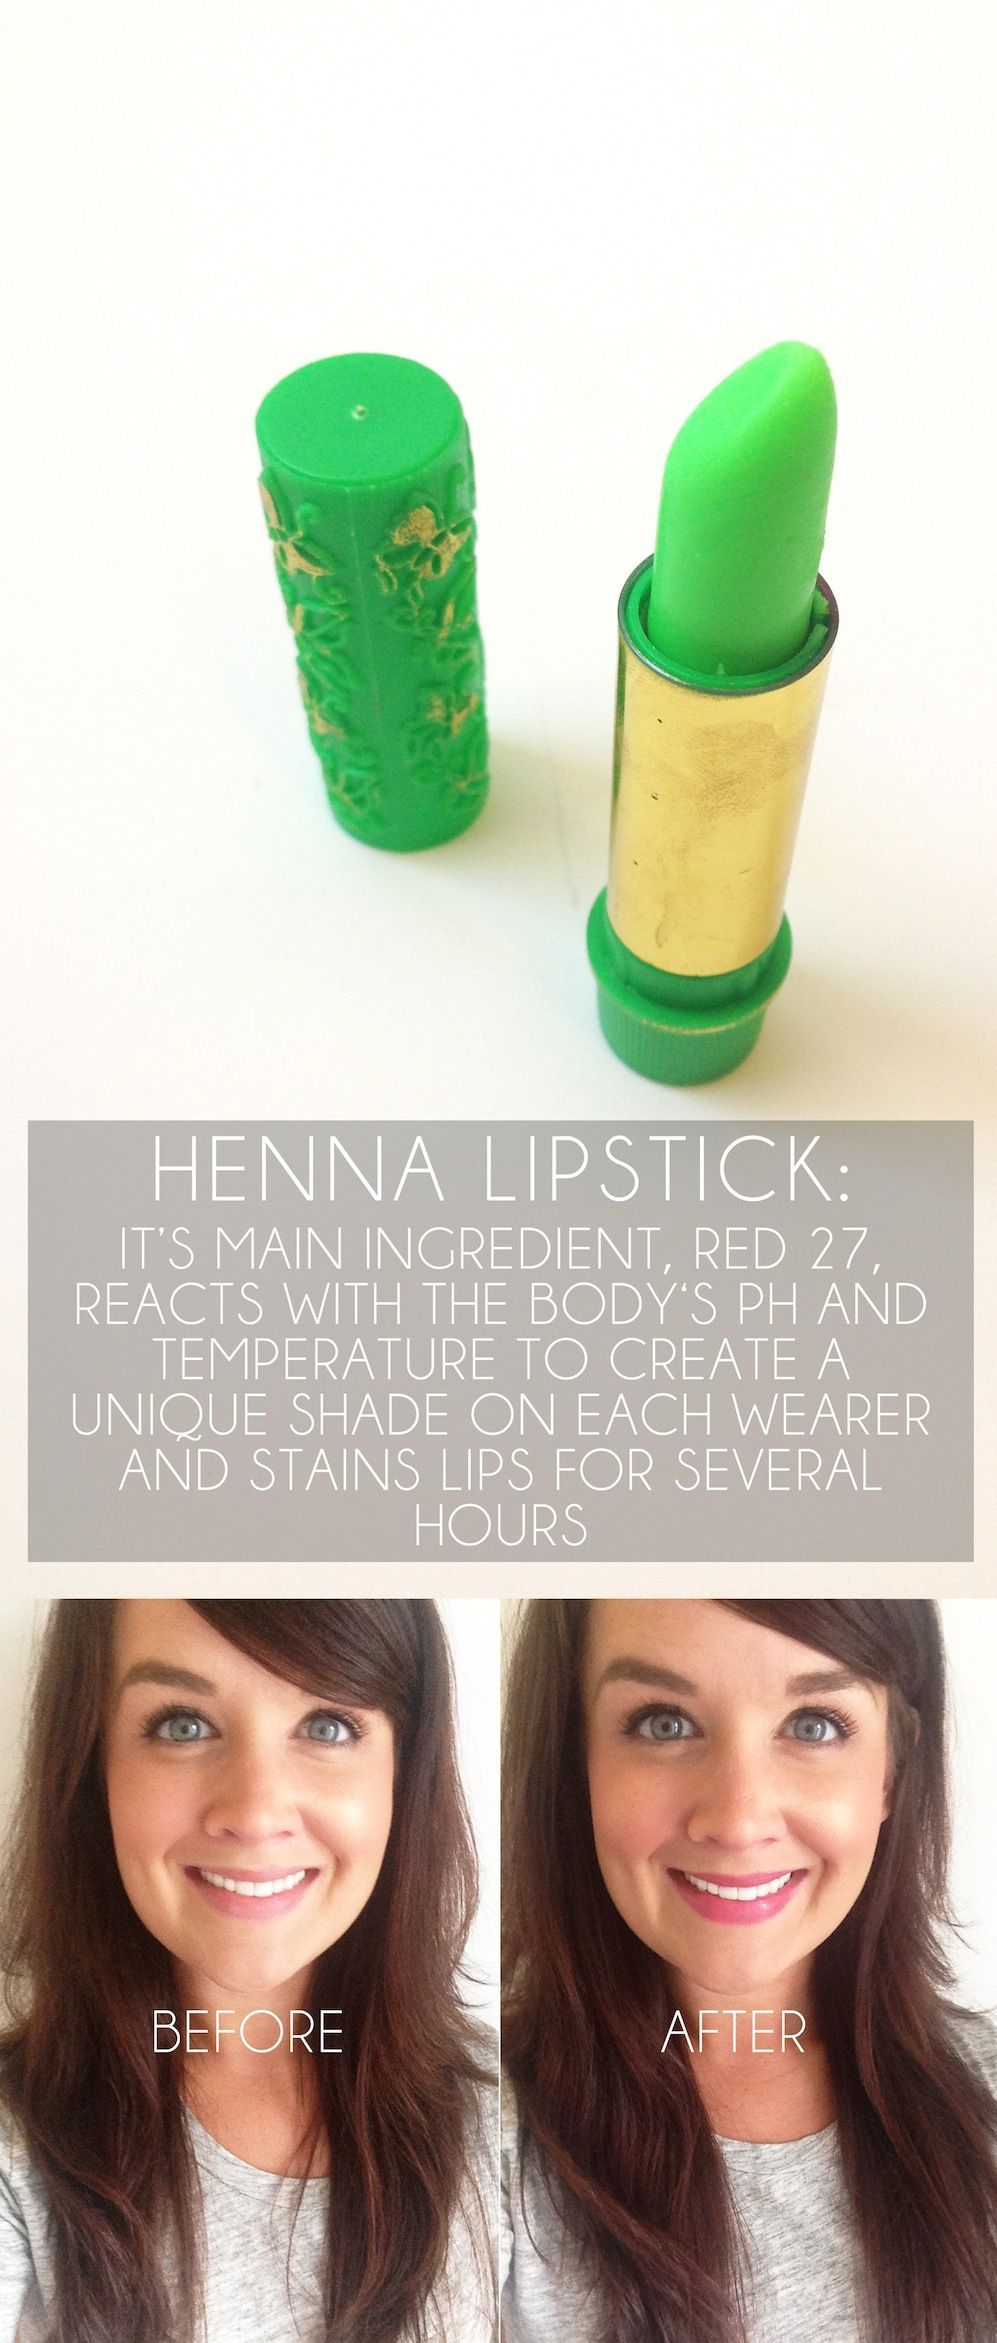 Henna Lipstick it reacts with the body's natural pH and